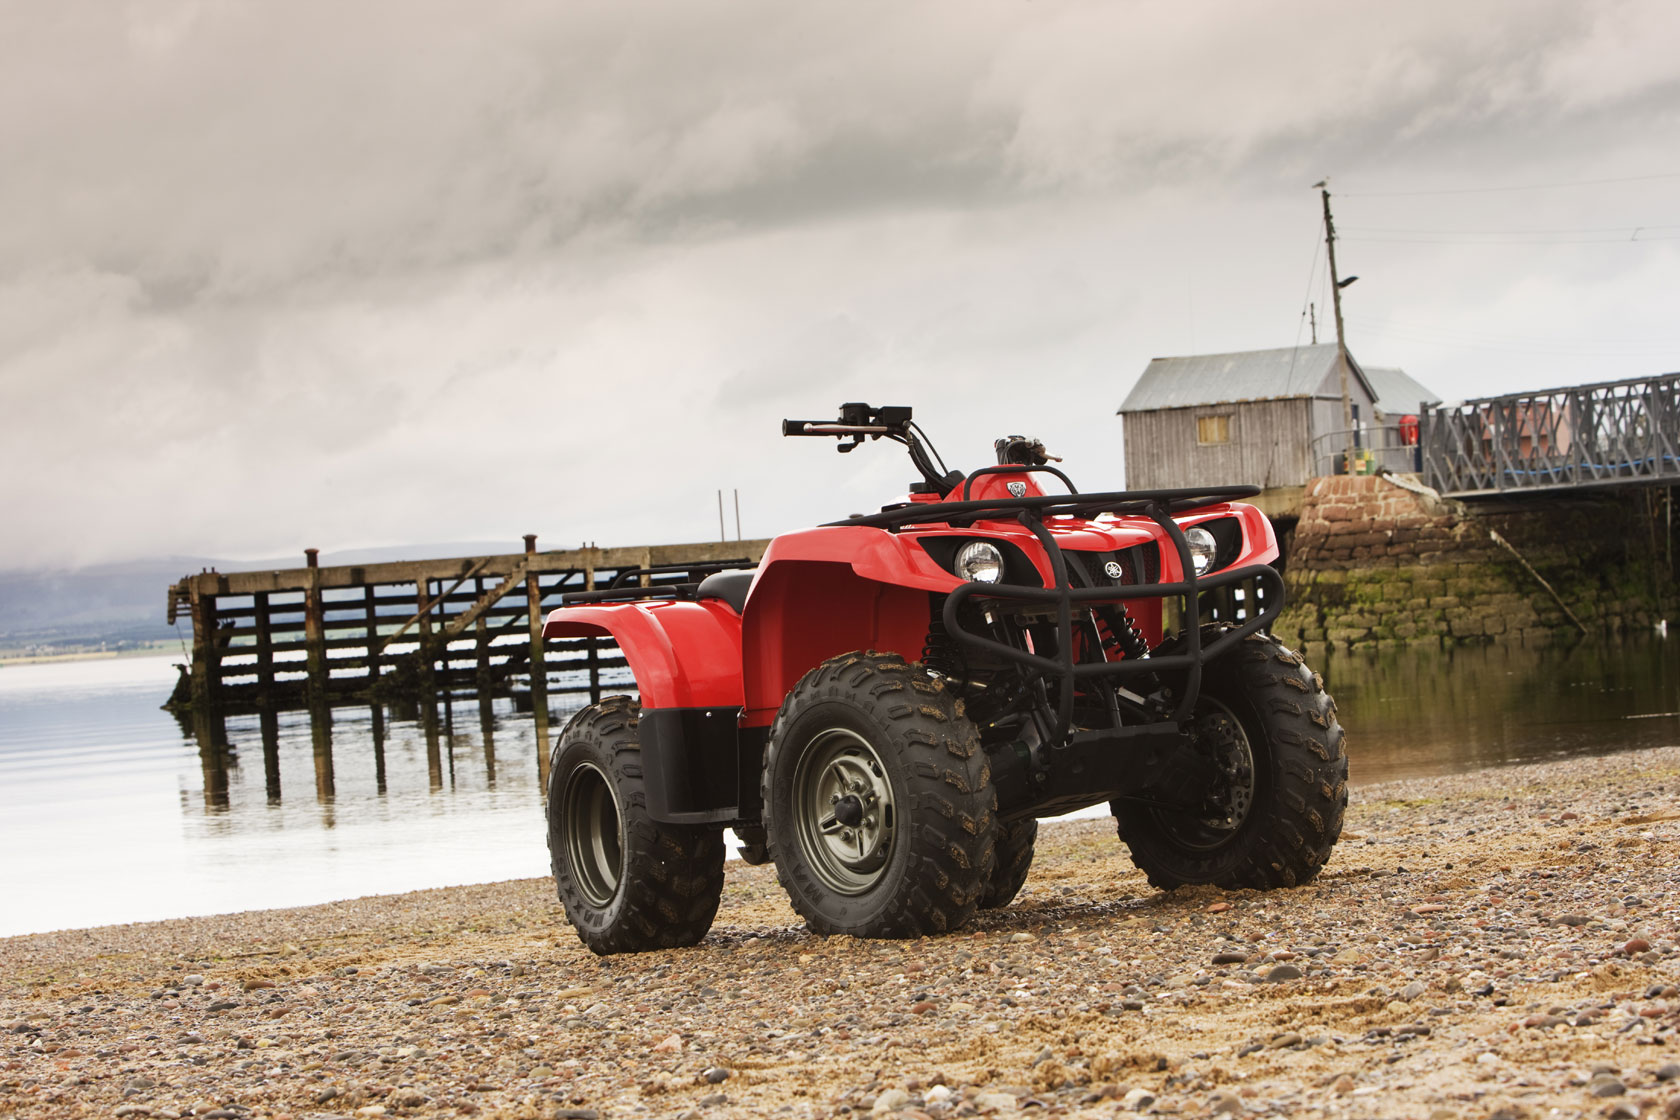 YAMAHA Grizzly 350 4x4 (2008 - 2009) ...